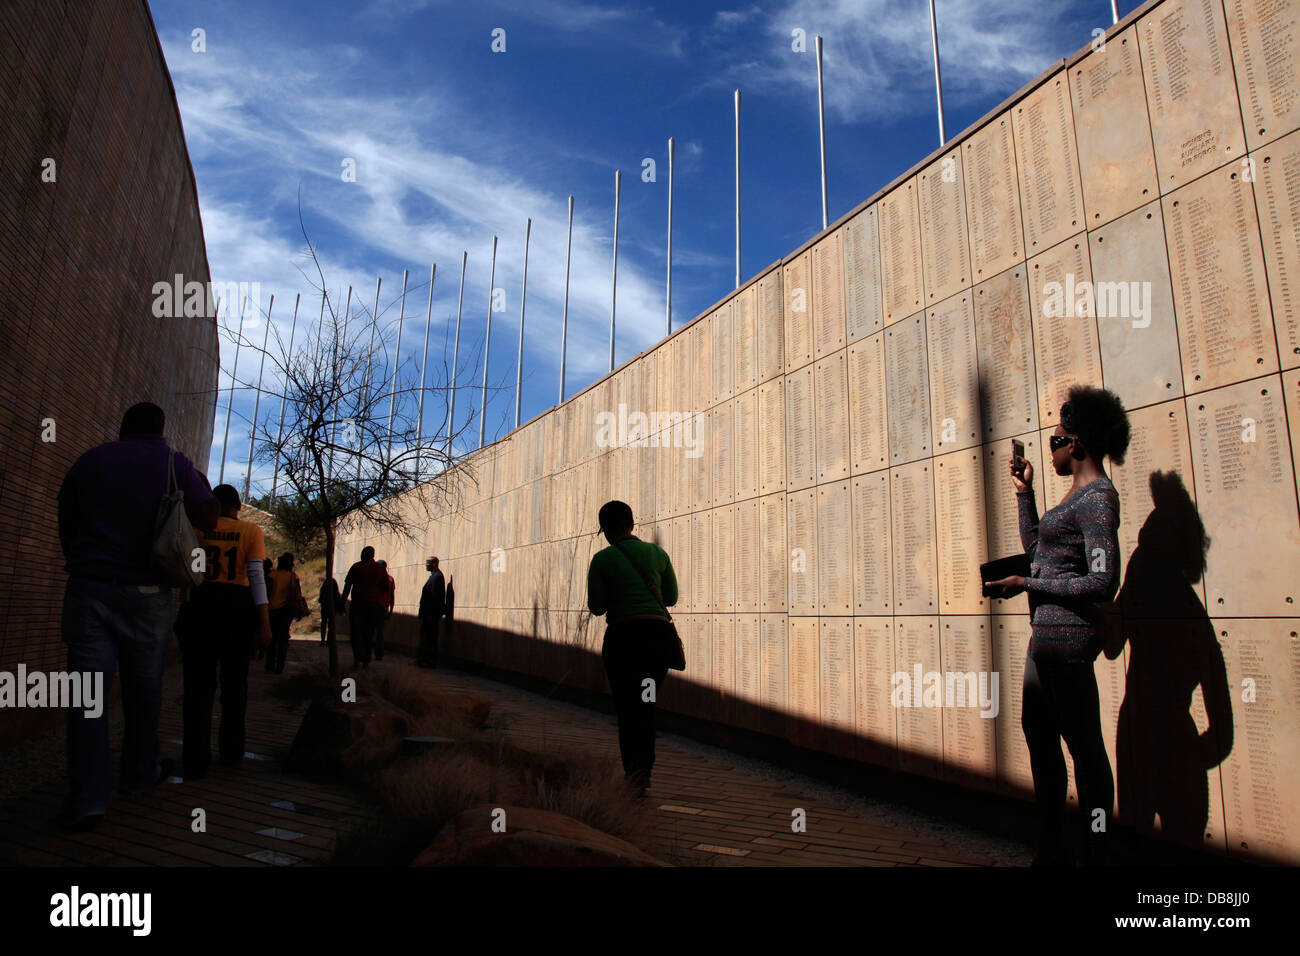 The Wall Names in memorial those who have played role in conflicts in South Africa's past in S'khumbuto - Stock Image